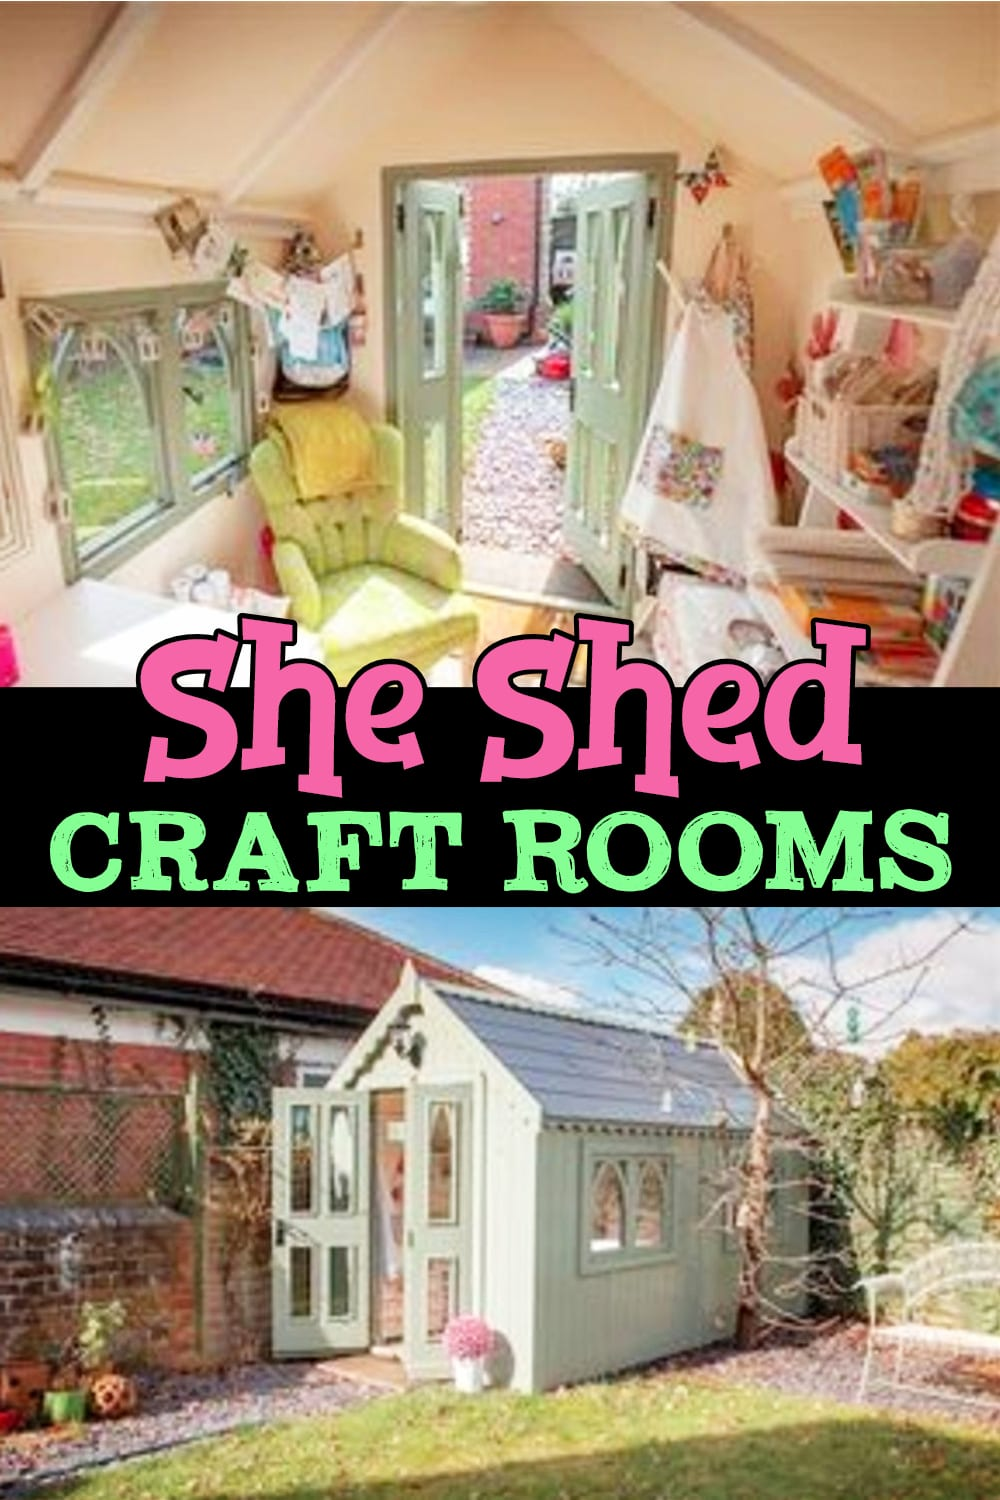 She Shed Ideas - Beautiful She Shed Ideas for a Backyard Retreat, Home Office or Craft Room - she sheds on a budget including she shed ideas interior - she shed ideas woman cave - She Shed Craft Room Ideas as well as she shed ideas interior craft rooms - beautiful DIY Backyard shed craft room ideas and shed office ideas! She Shed Pics, Images and Designs For The Perfect She Shed (or HE shed) - She Shed Cottage Office Ideas Pictures too!